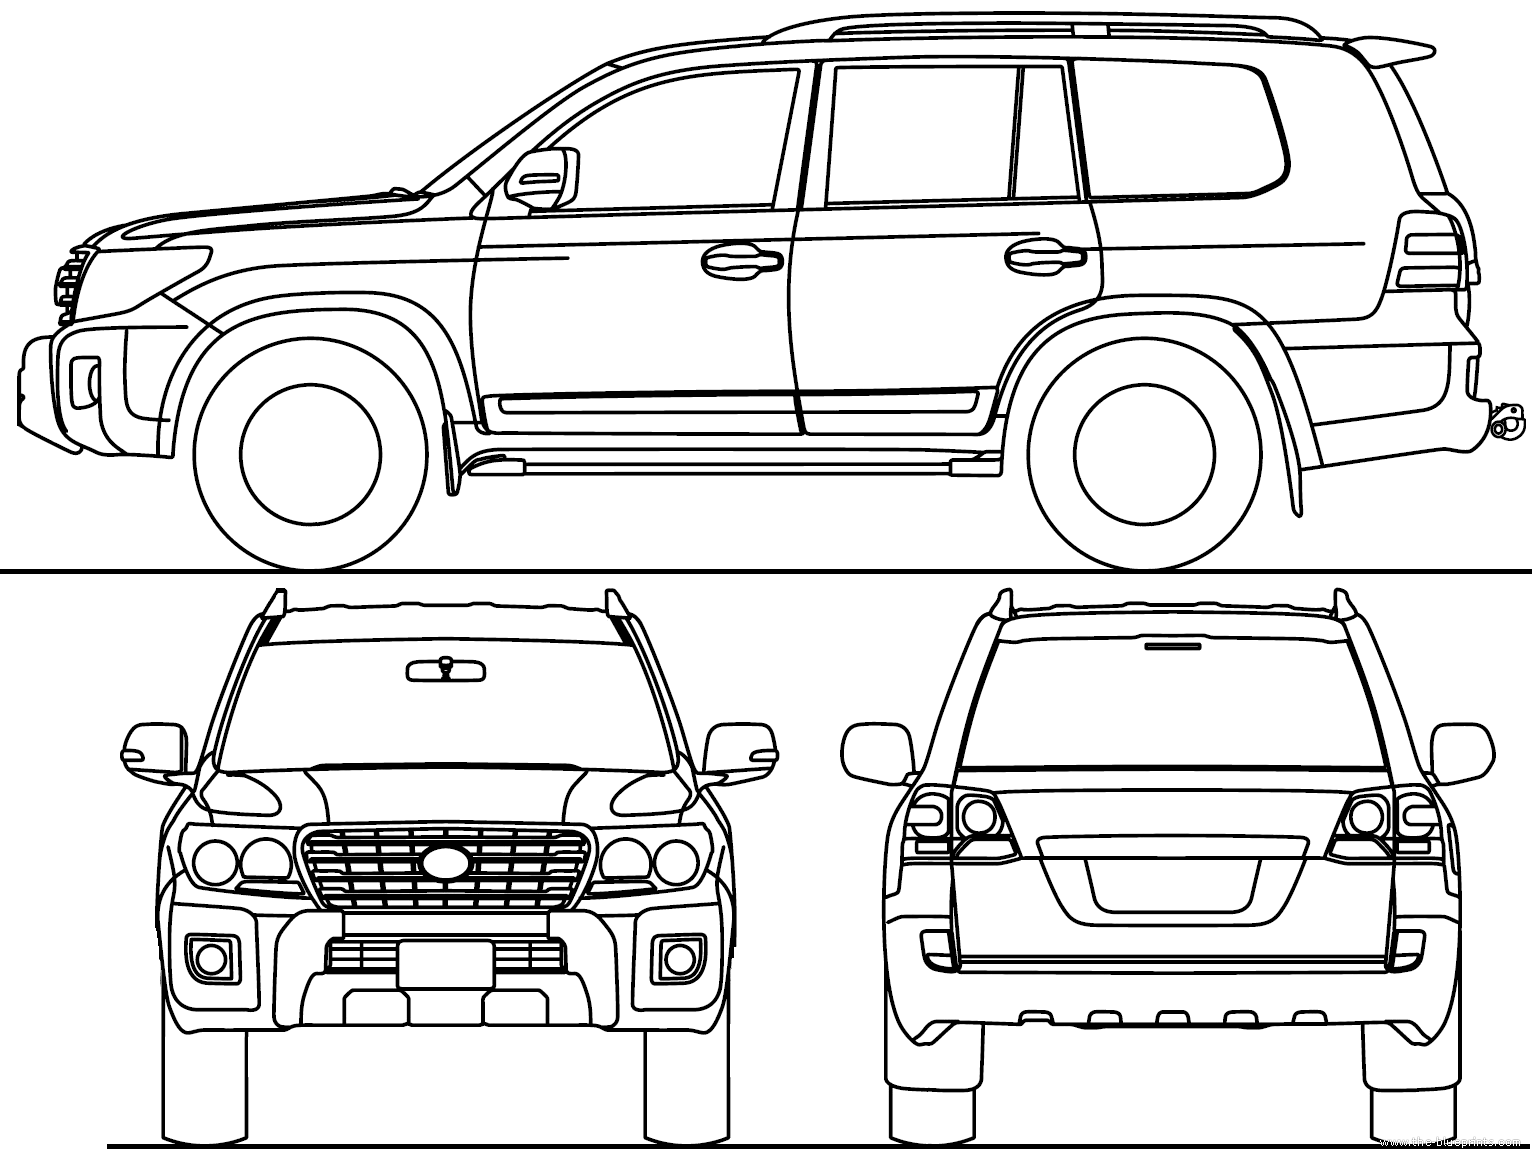 blueprints  u0026gt  cars  u0026gt  toyota  u0026gt  toyota land cruiser 200 v8